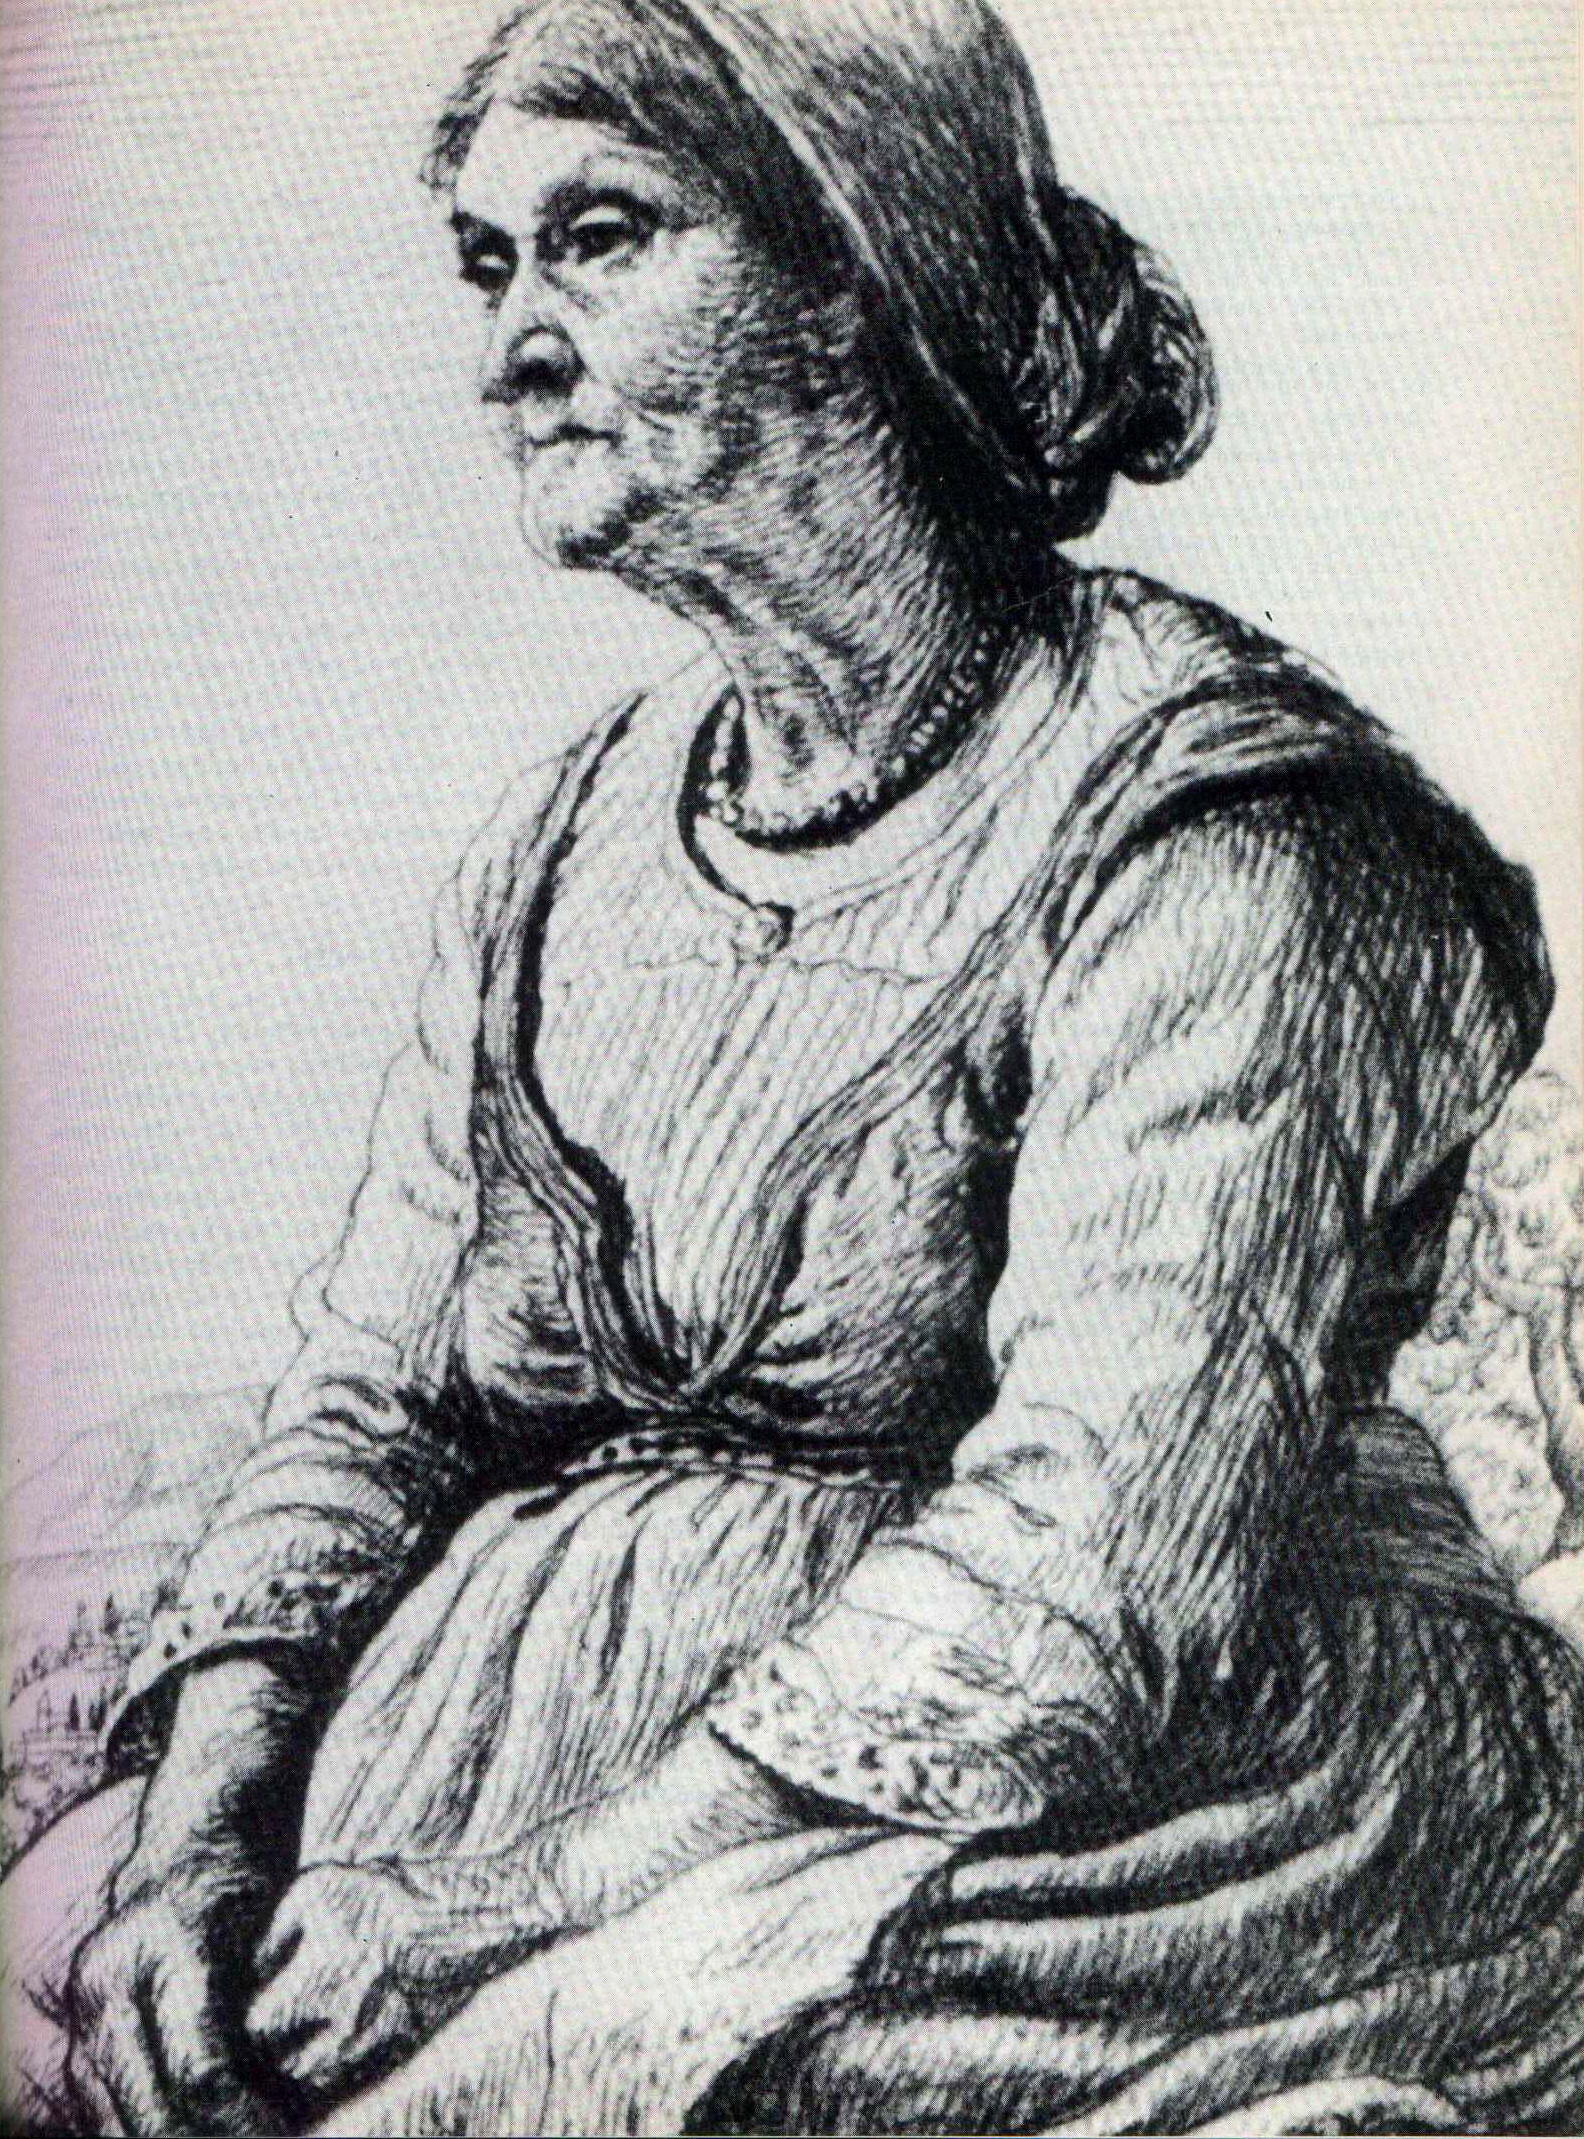 Picture (opposite page) is of an etching of a Yiddish Momme by the late Ben Silbert.